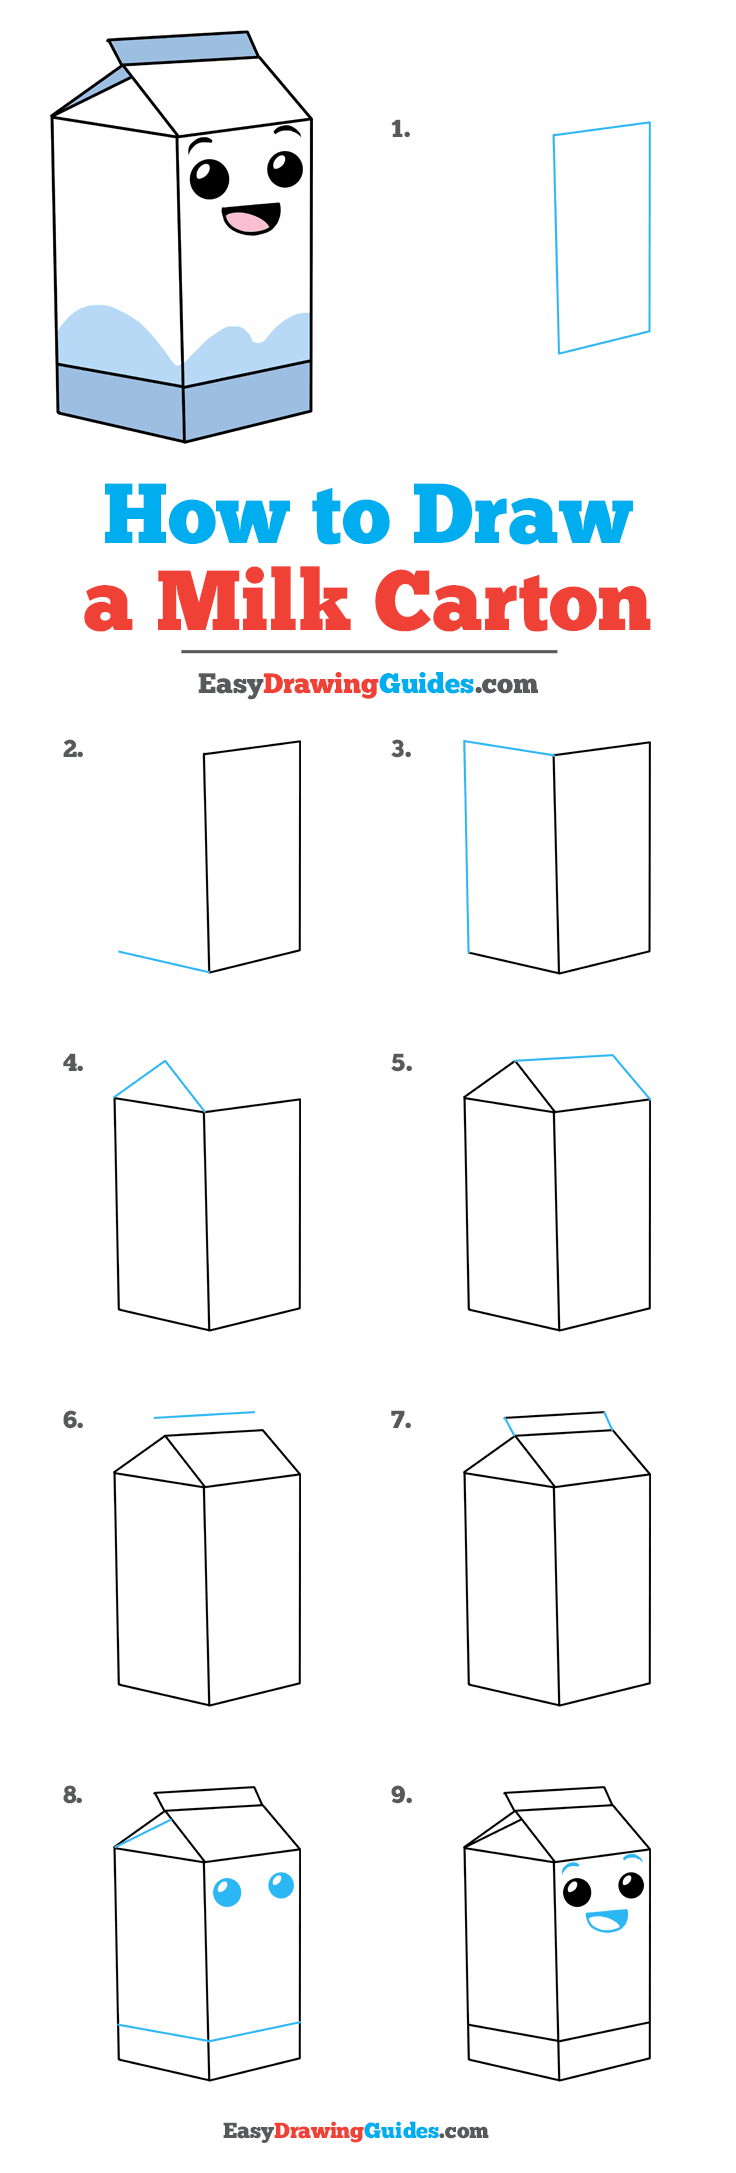 How to Draw Milk Carton